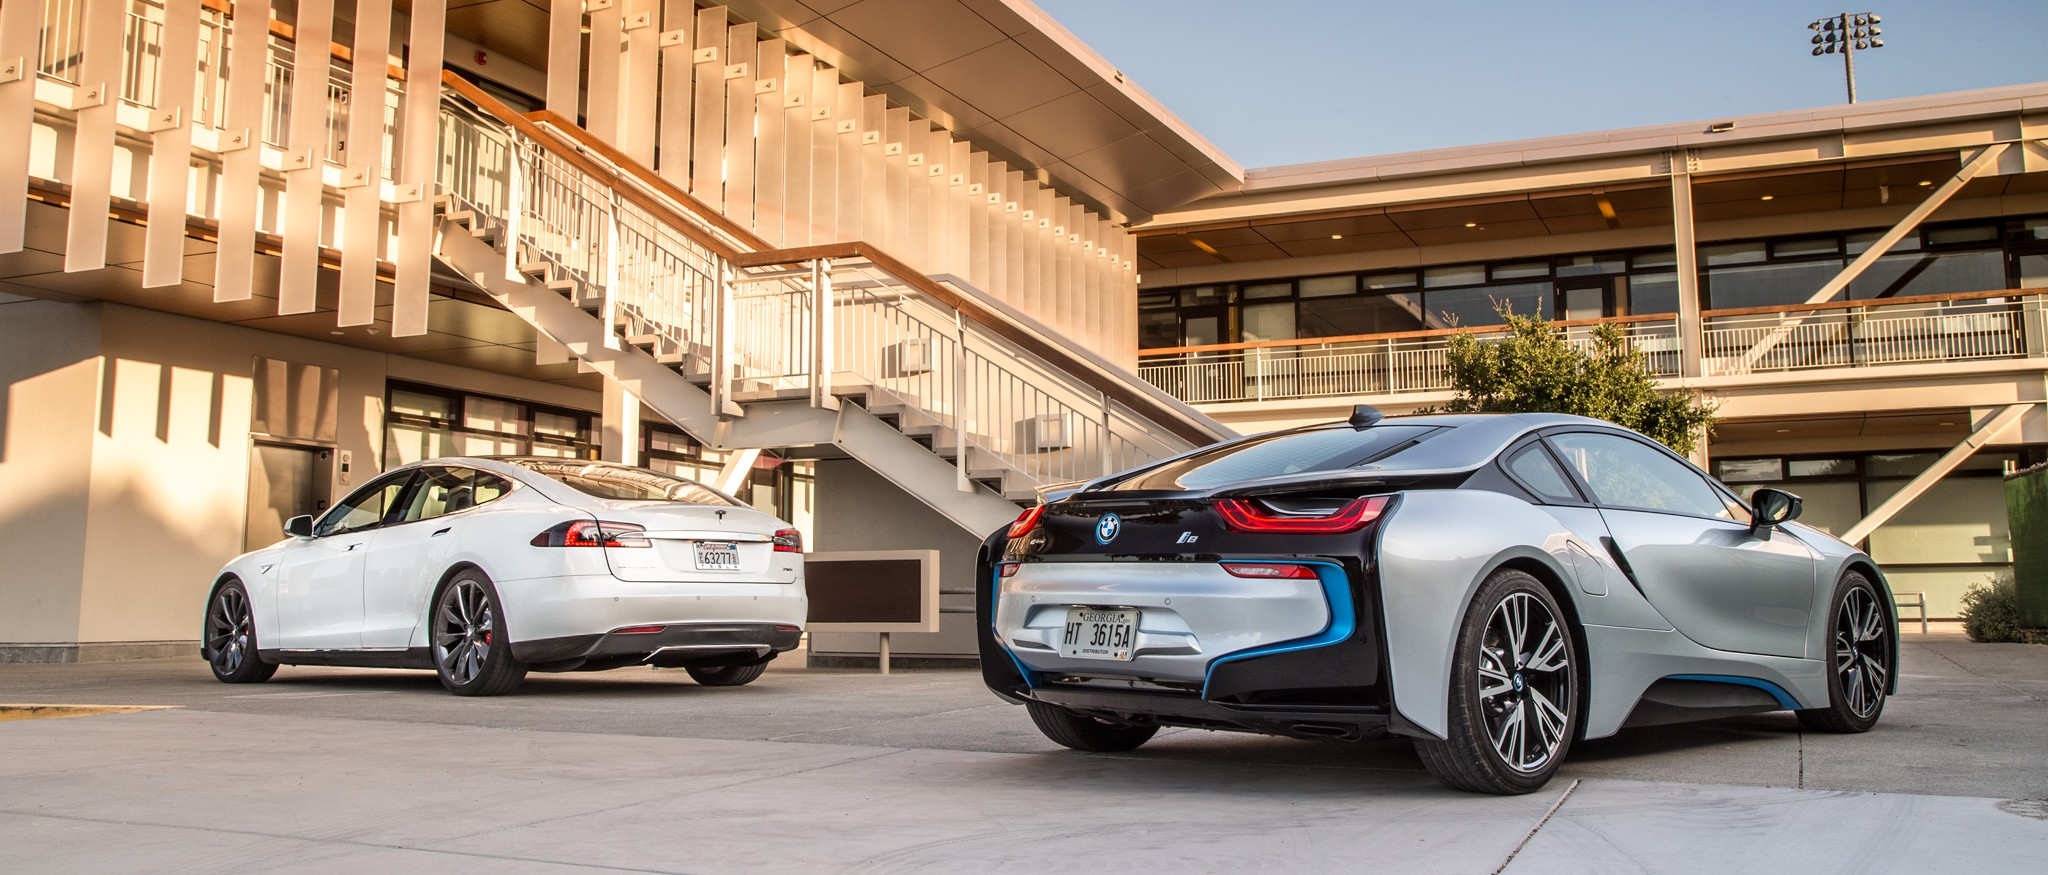 2014-bmw-i8-tesla-model-s-rear-three-quarters